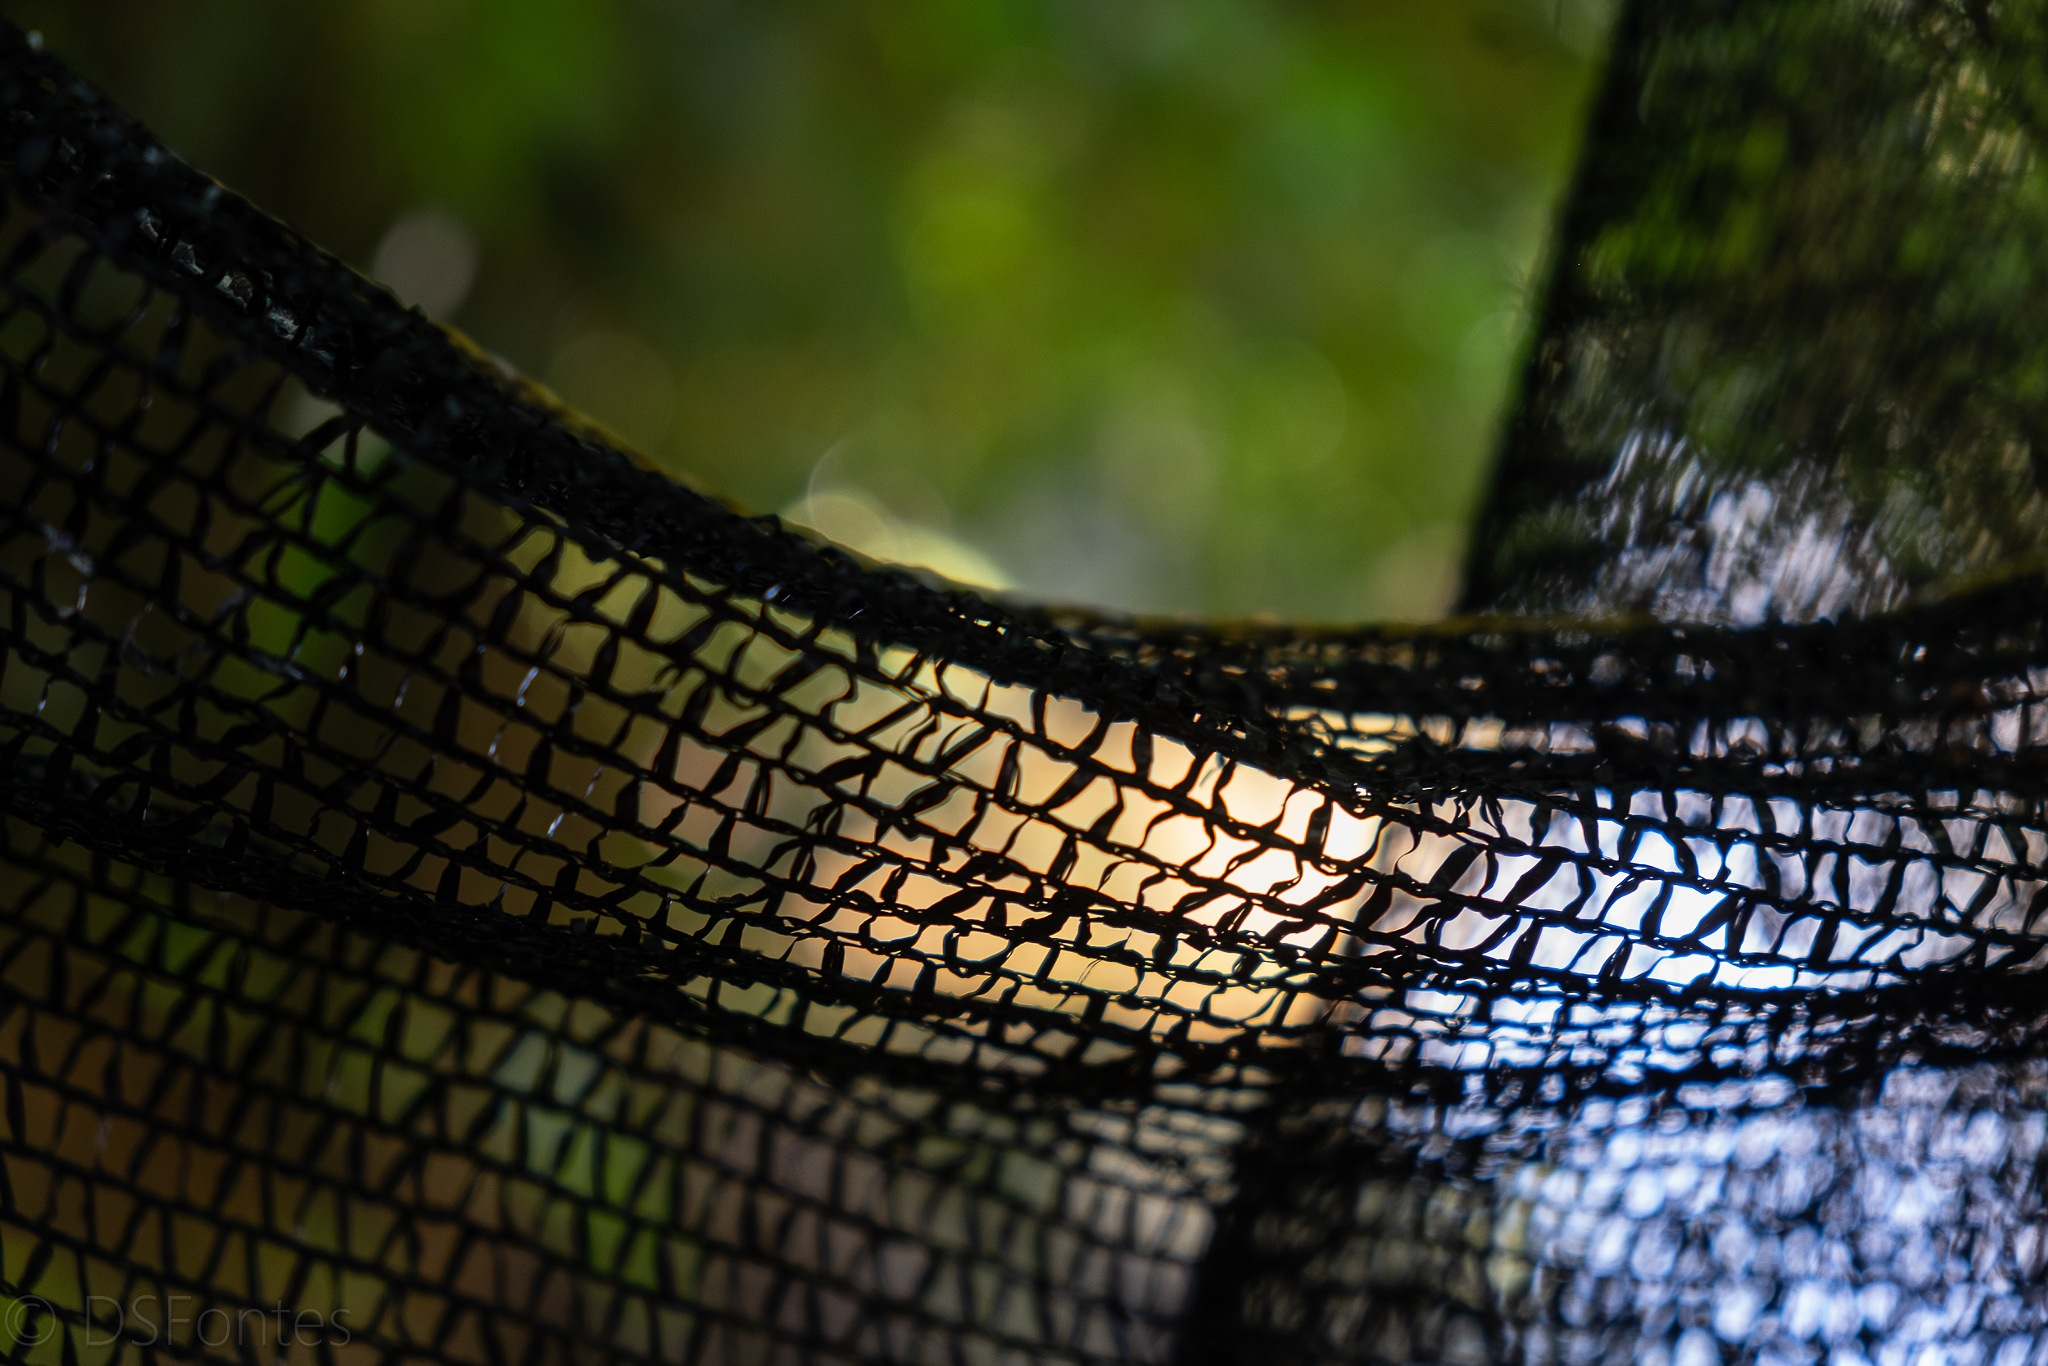 Not a fishing net, but a net anyway by Doris Fontes